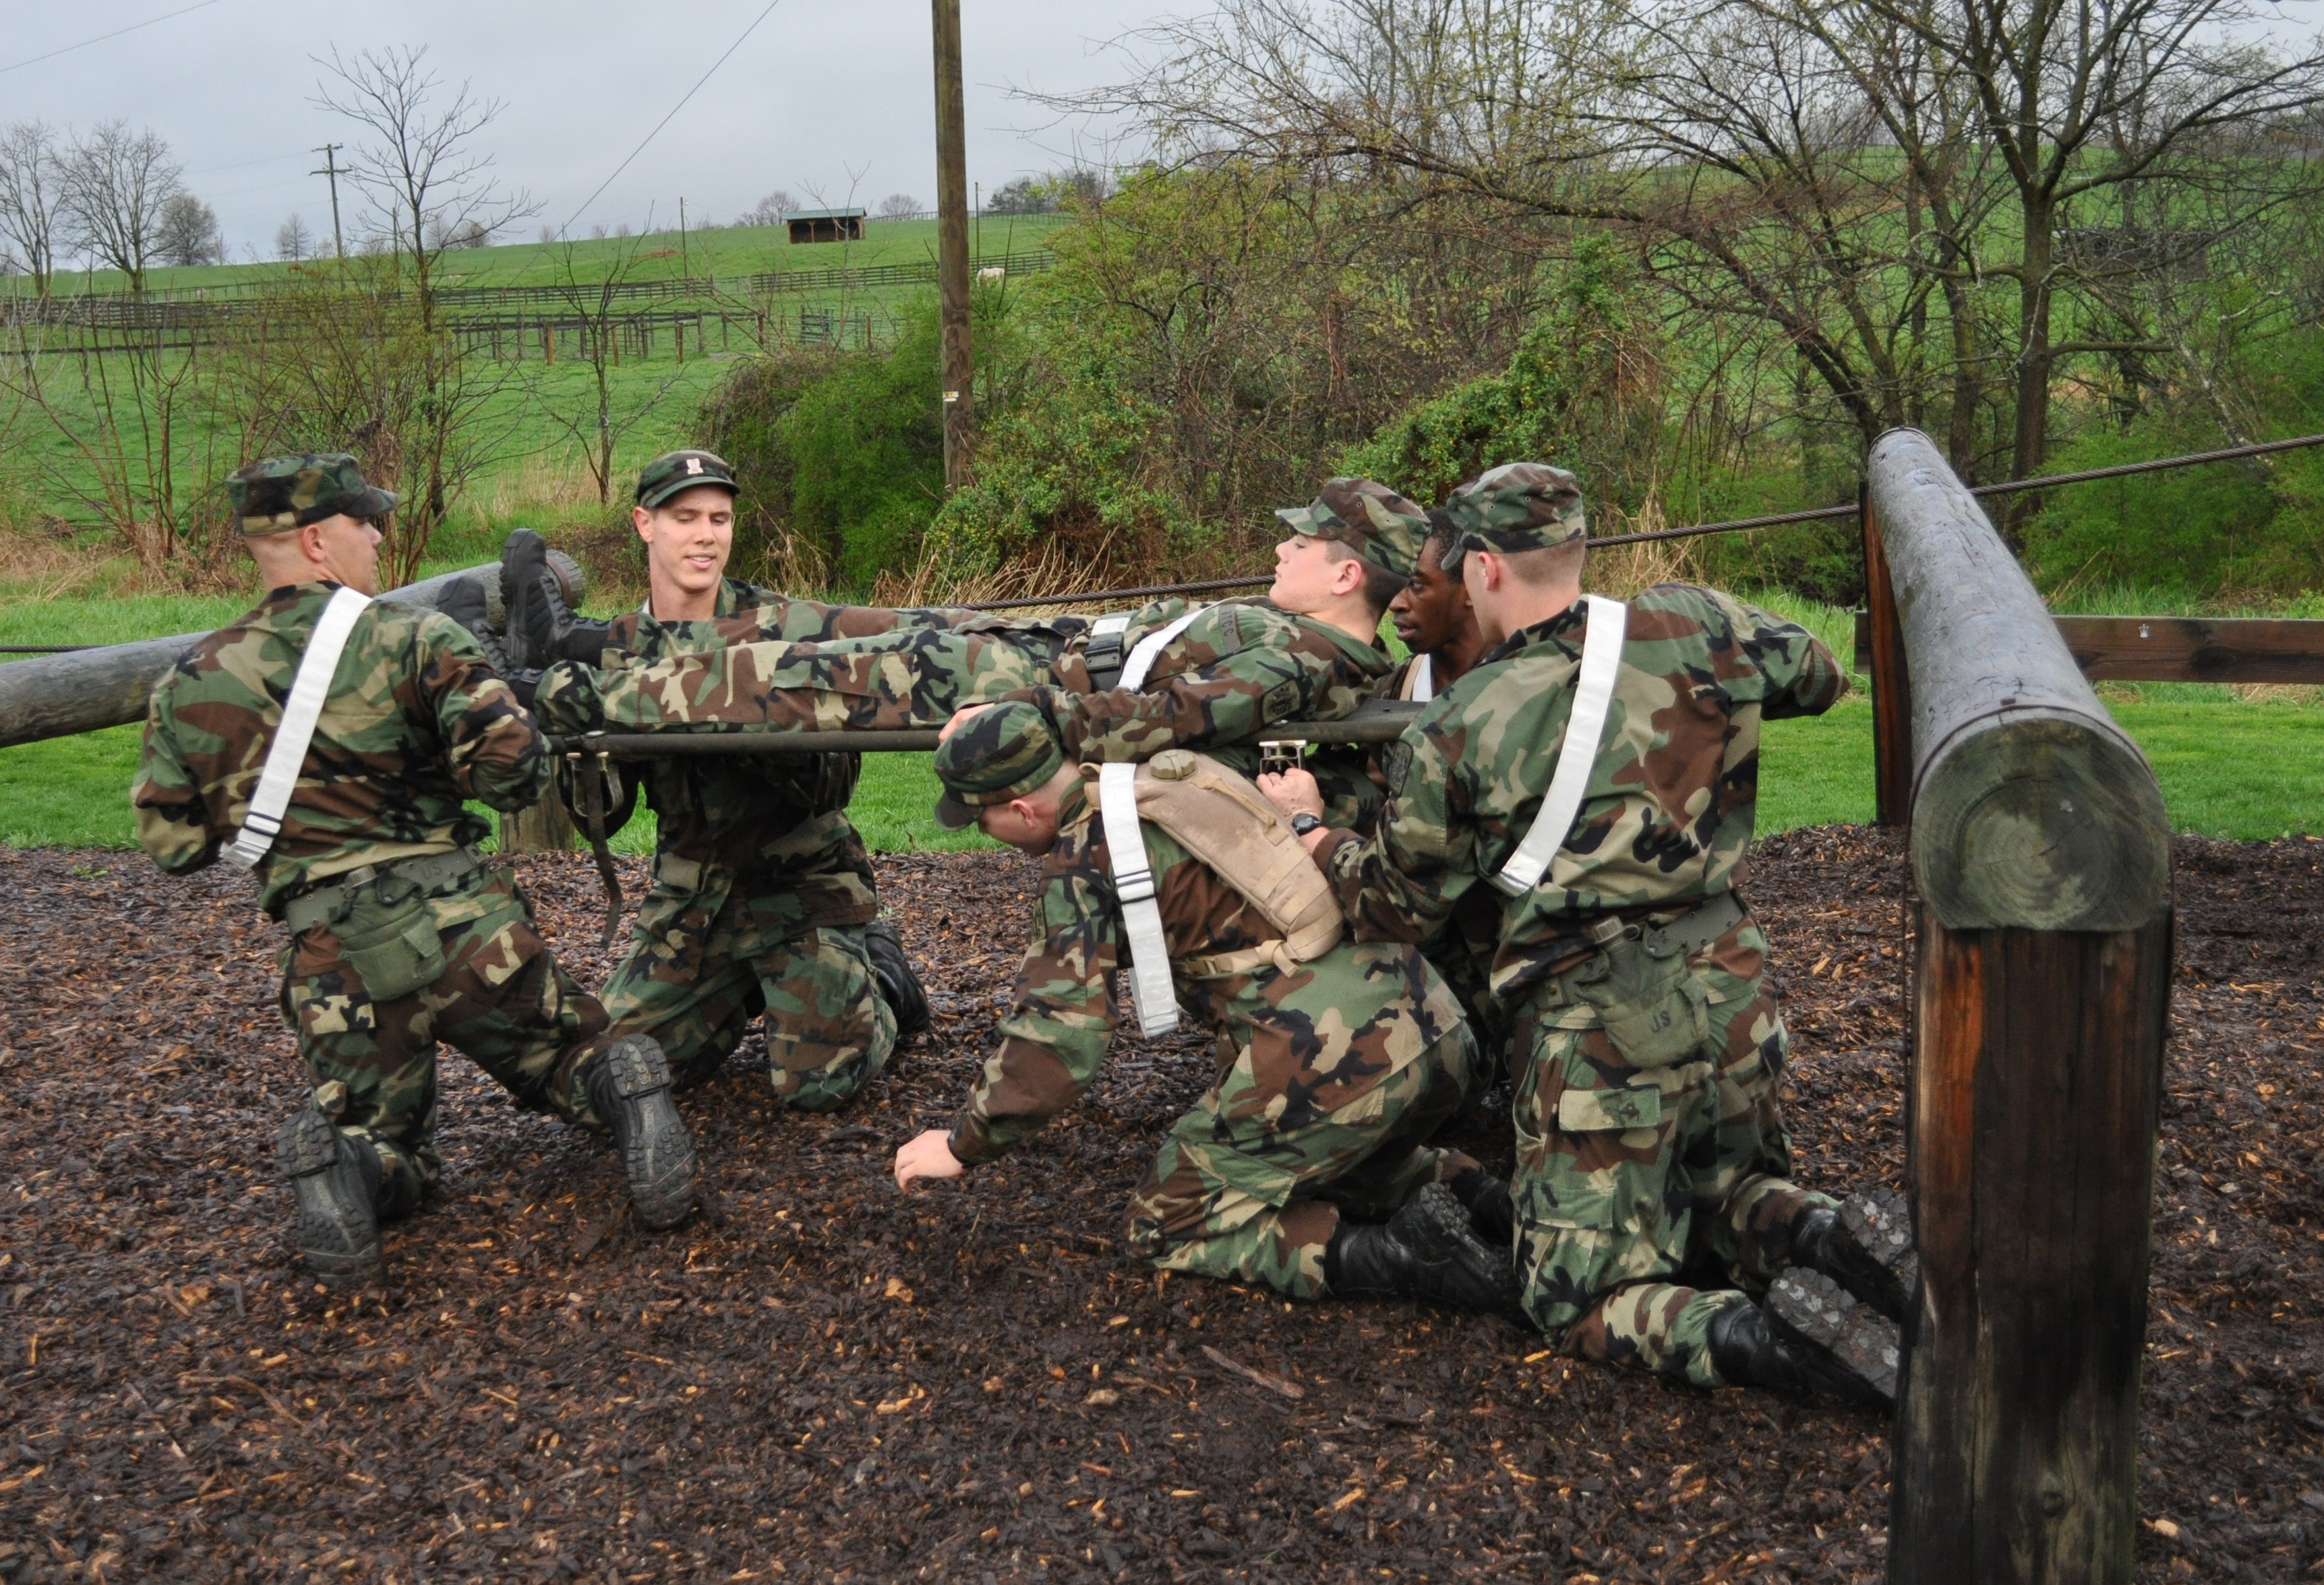 Cadets take part in an event during the Annual Corps Squad Tactical Challenge and carry a cadet via litter over the obstacle course